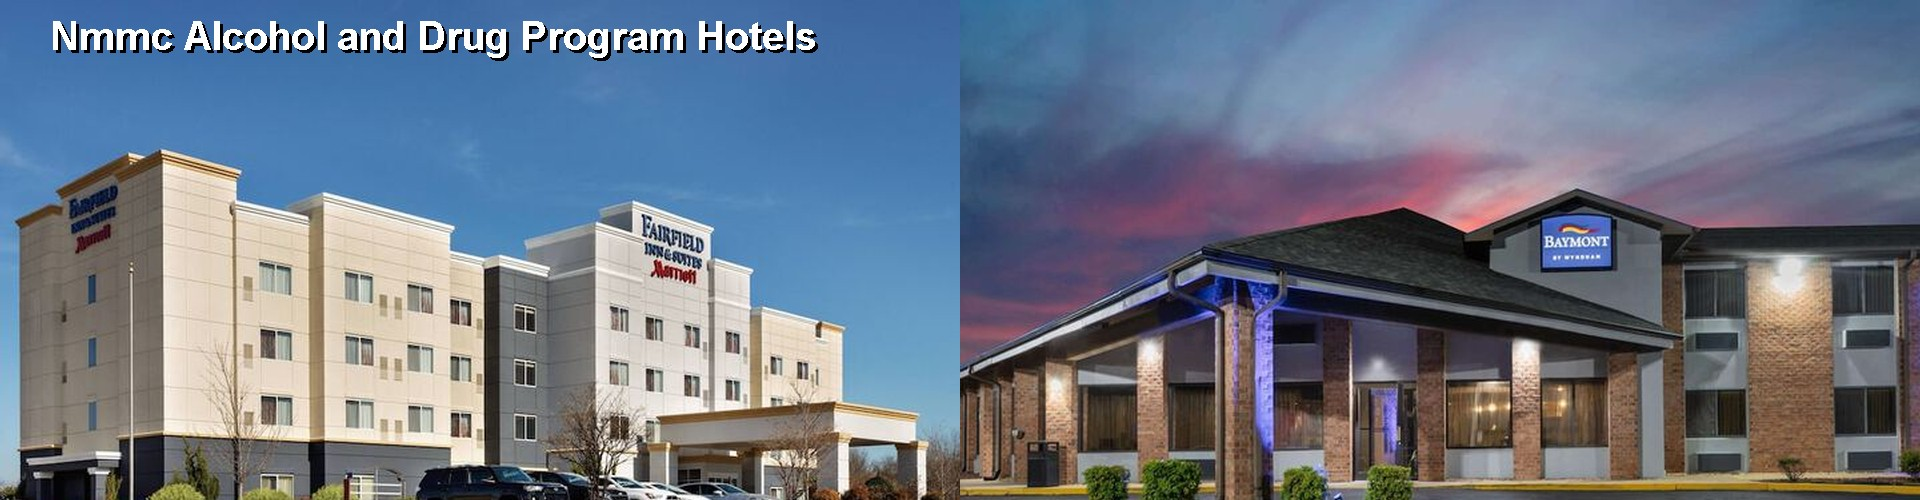 5 Best Hotels near Nmmc Alcohol and Drug Program